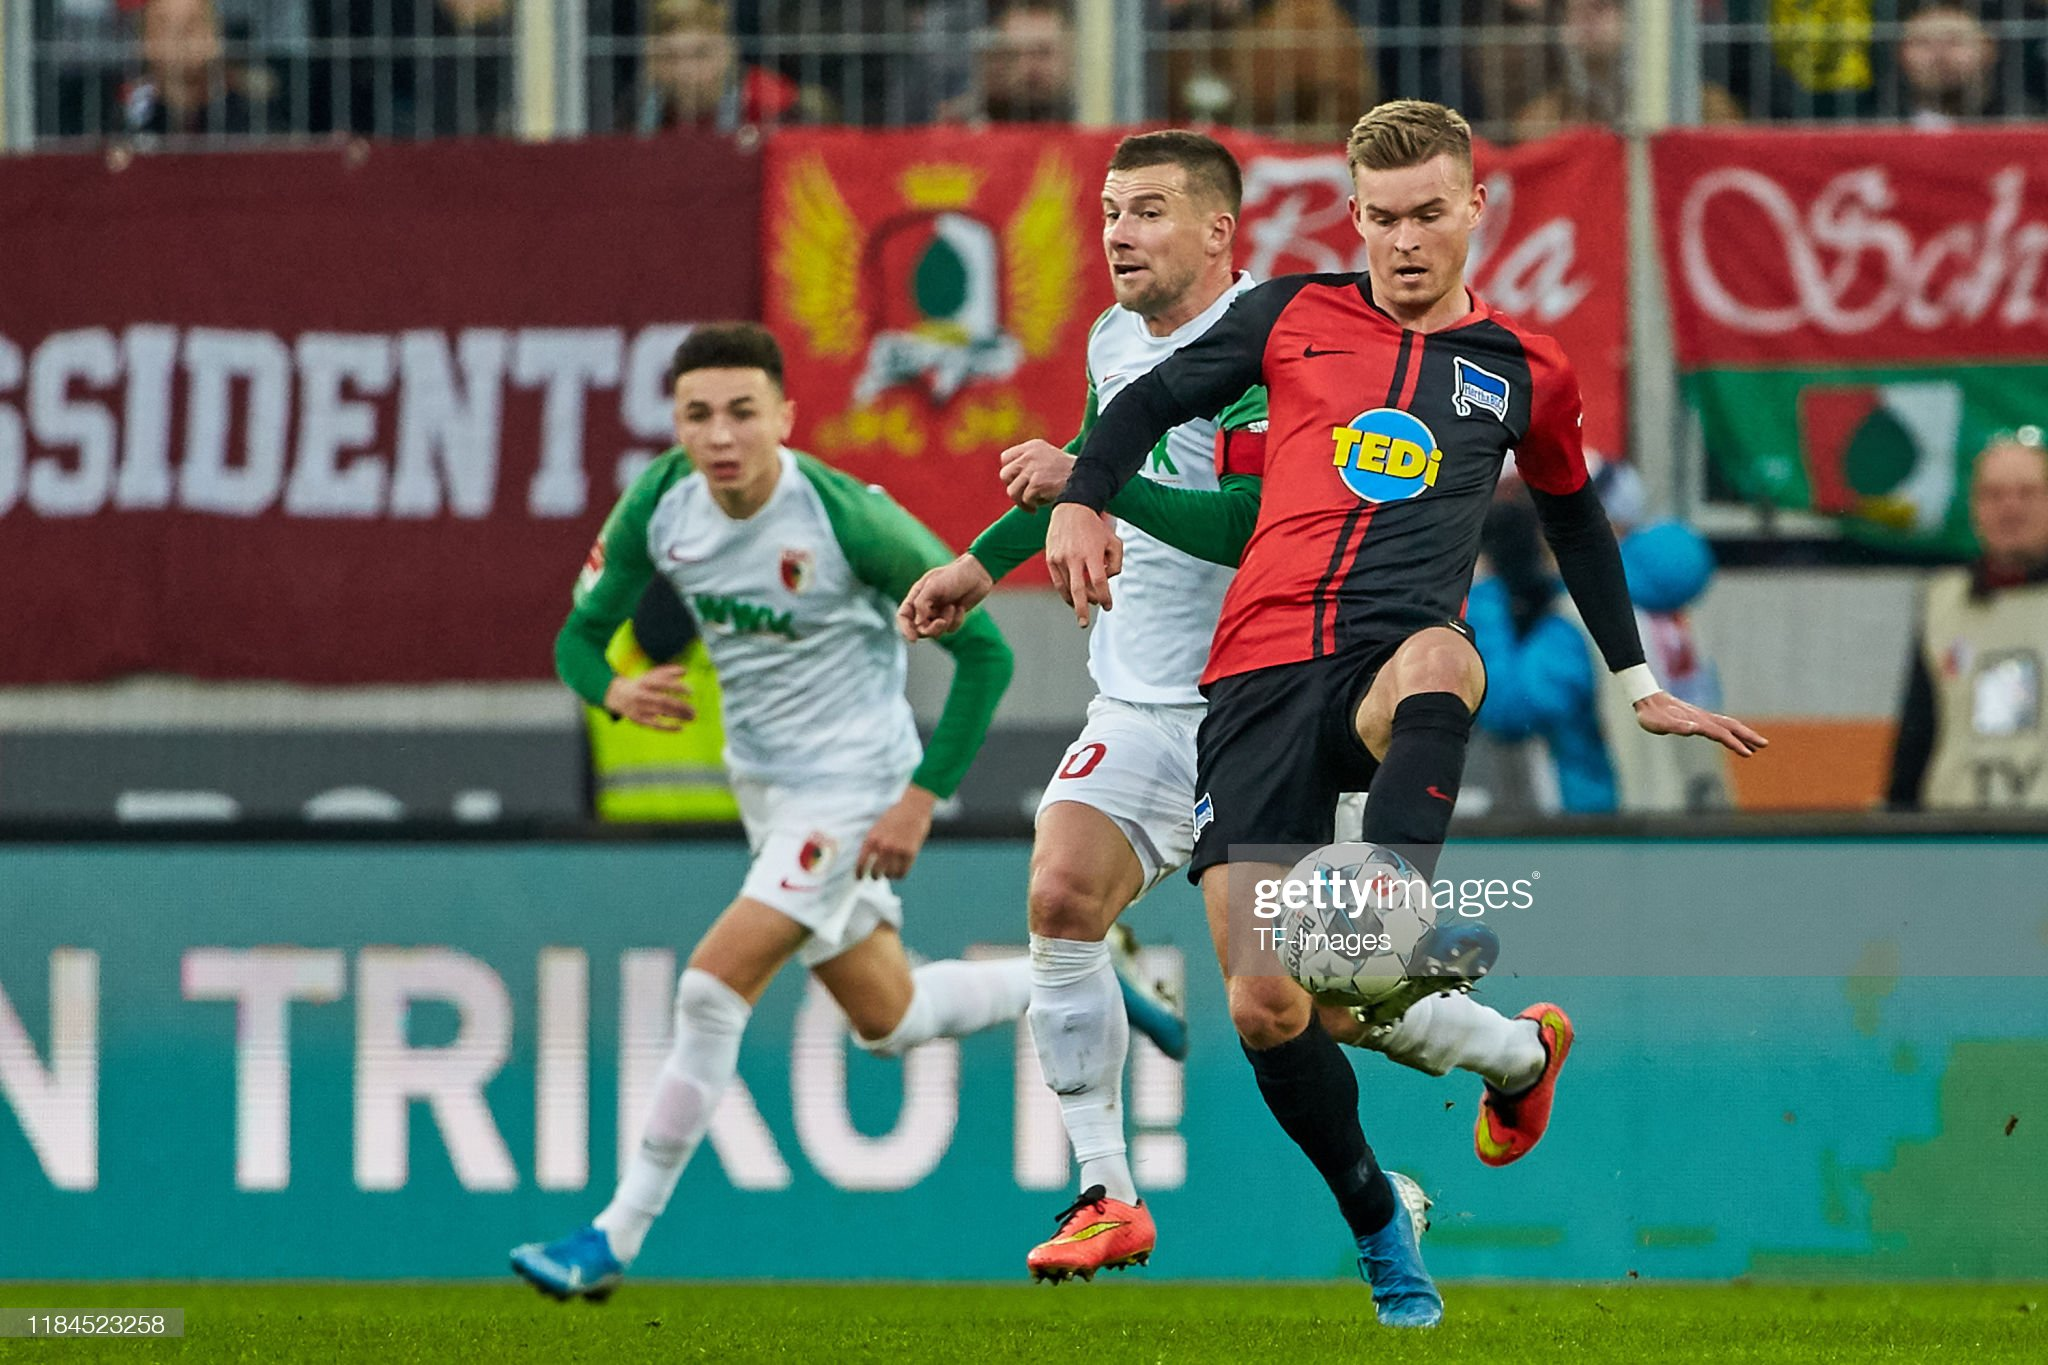 Hertha Berlin vs Augsburg Preview, prediction and odds